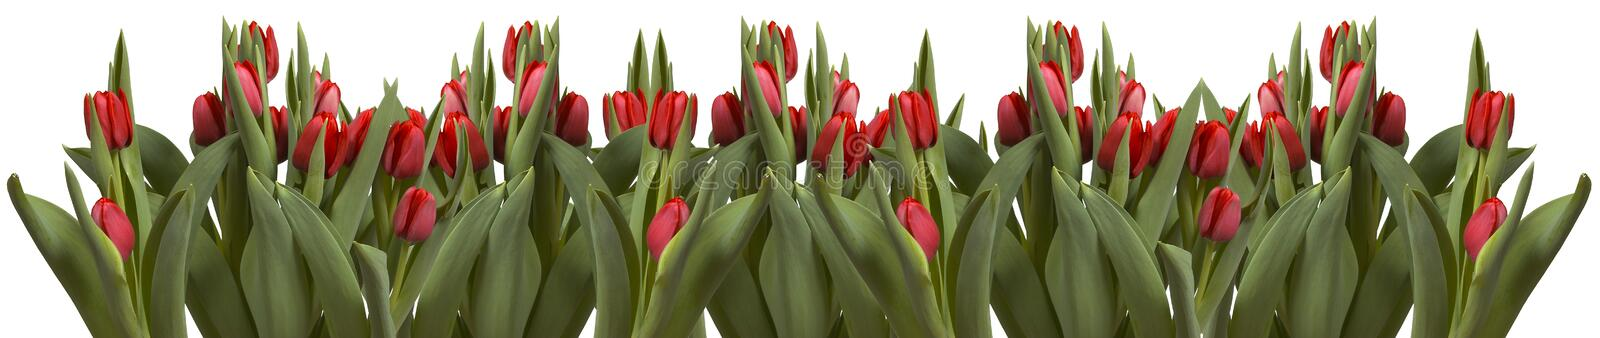 Line of tulips on white